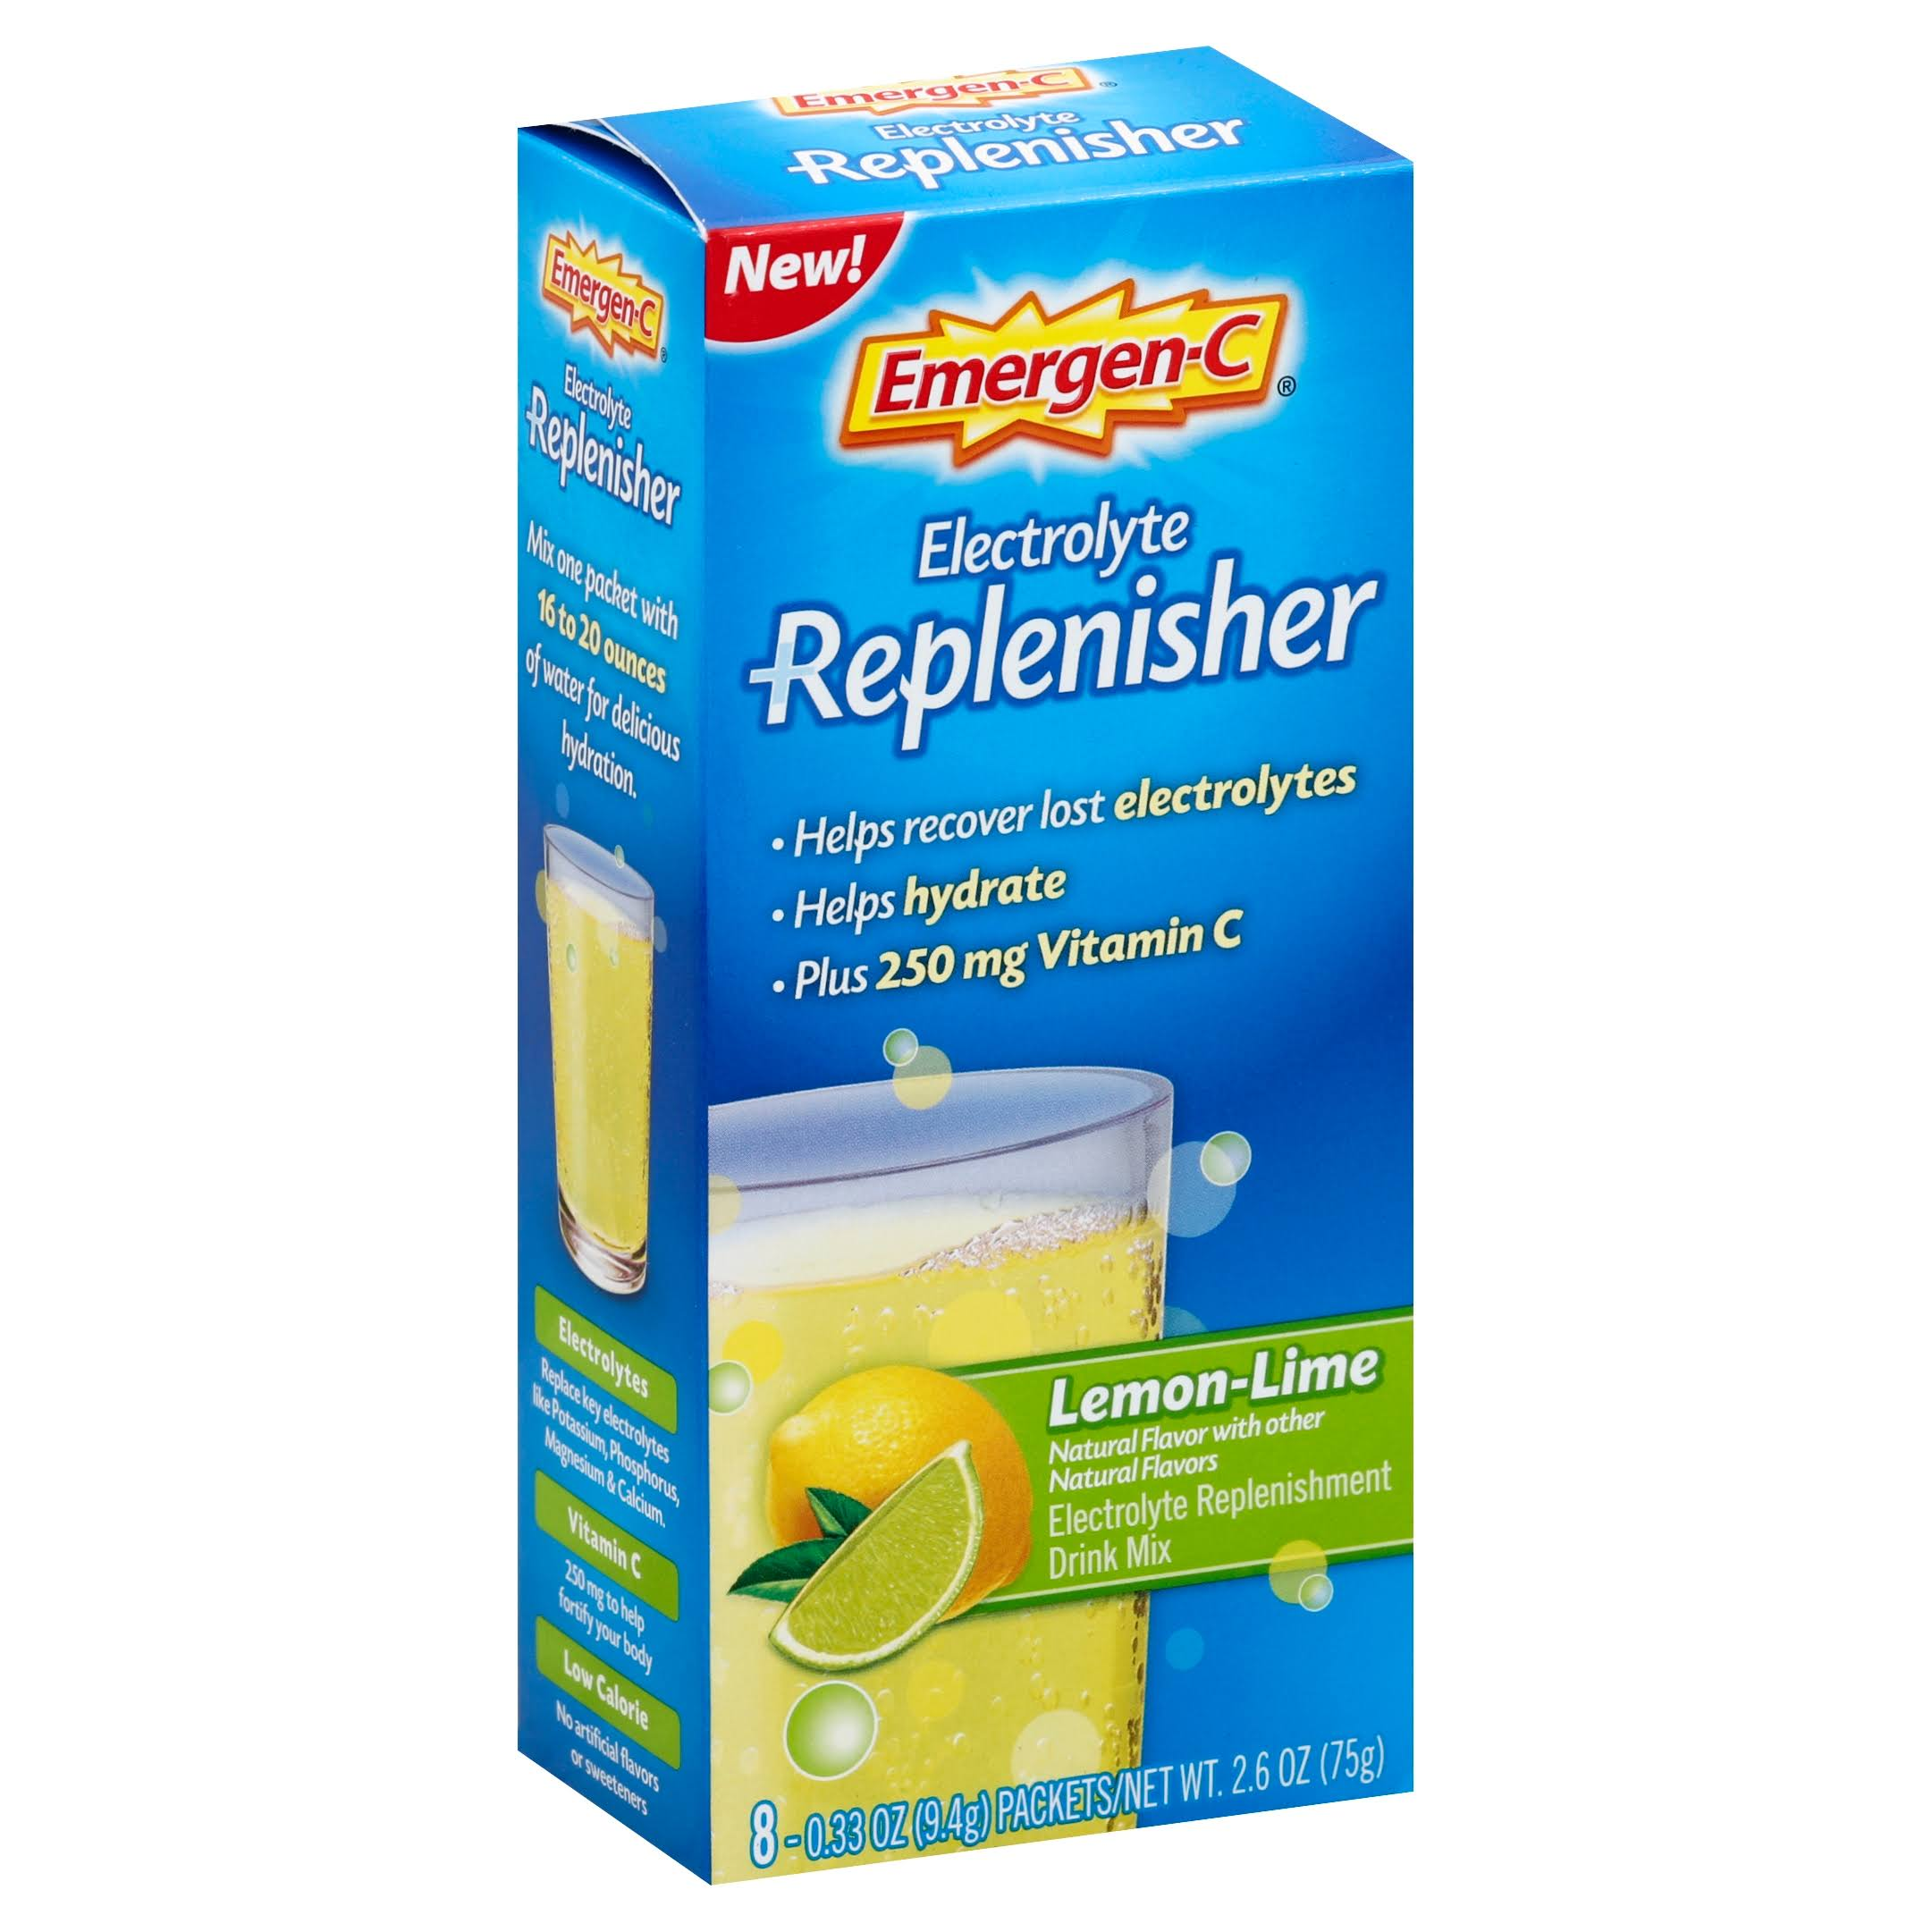 Emergen-C Replenisher Electrolyte Replenishment Drink Mix - 8 Packets, 0.33oz, Lemon-Lime